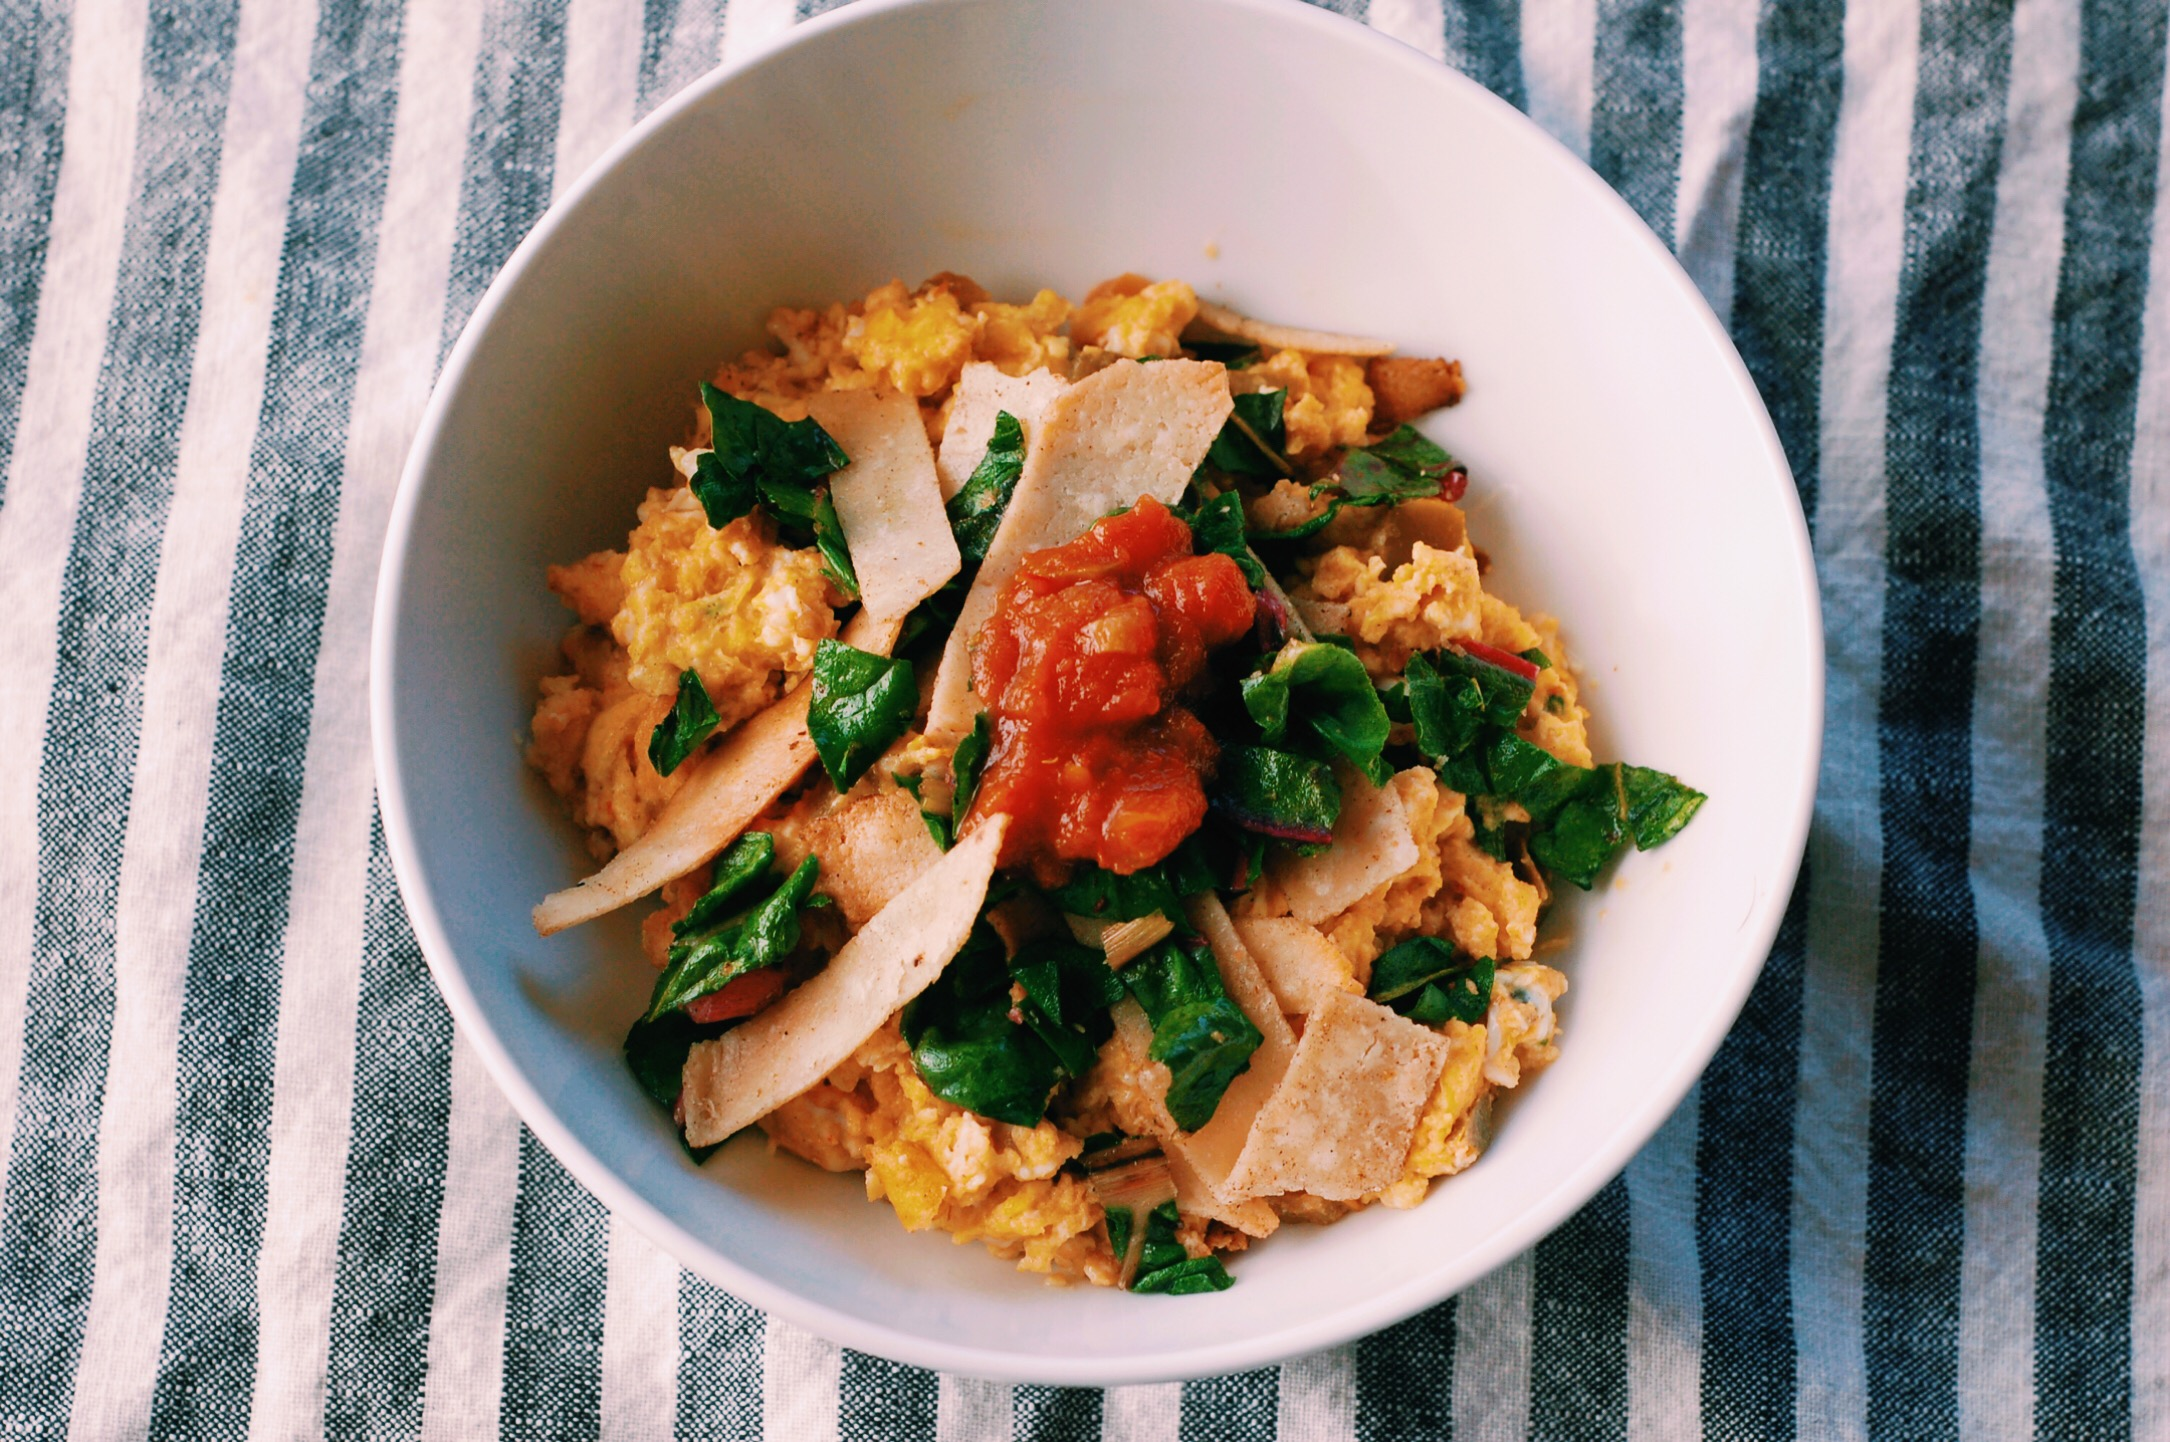 Grain-Free Chilequiles